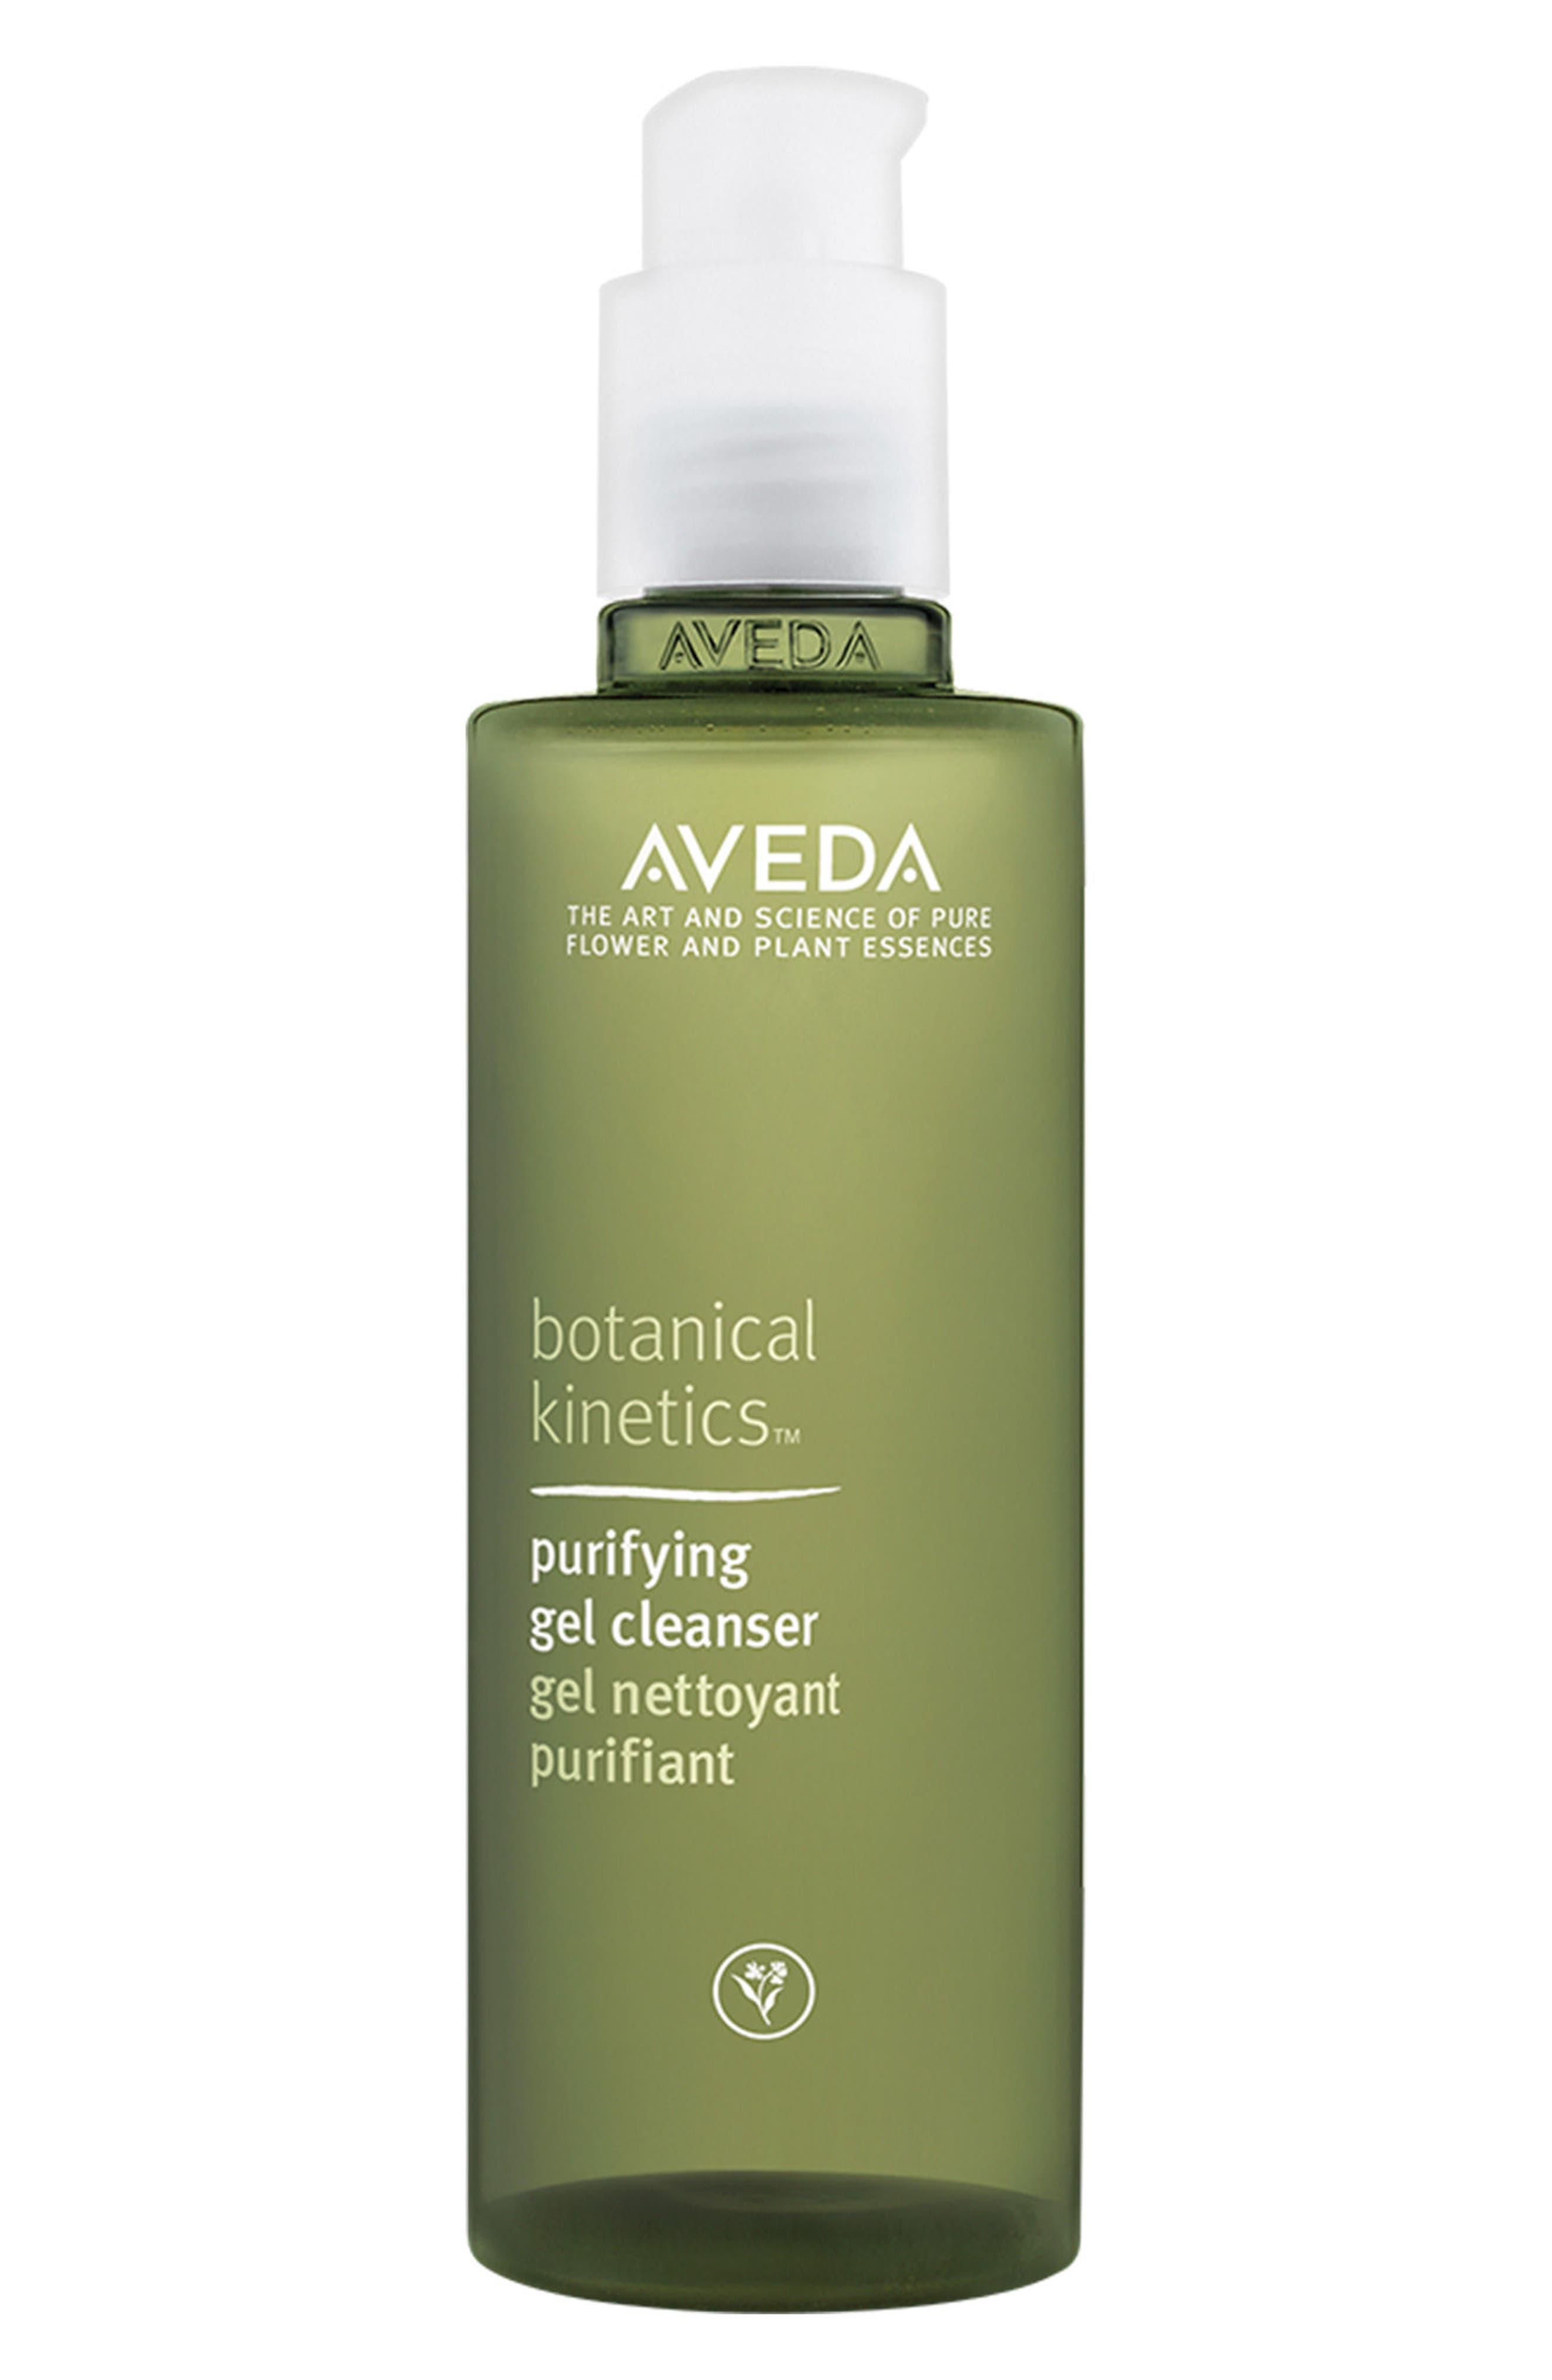 Alternate Image 2  - Aveda 'botanical kinetics™' Purifying Gel Cleanser